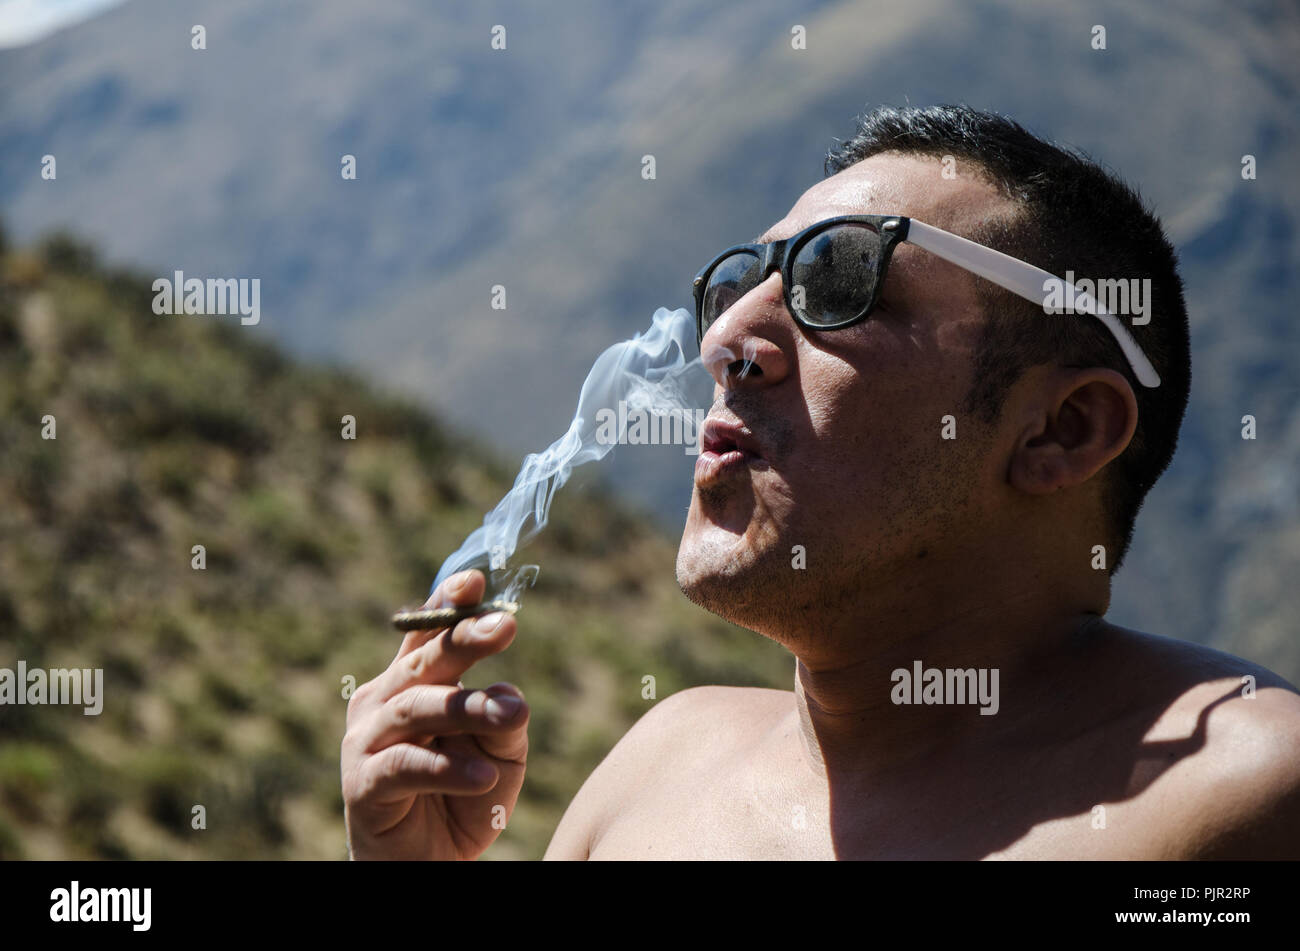 Young man smoking tobacco, man with sunglasses and mountains background - Stock Image